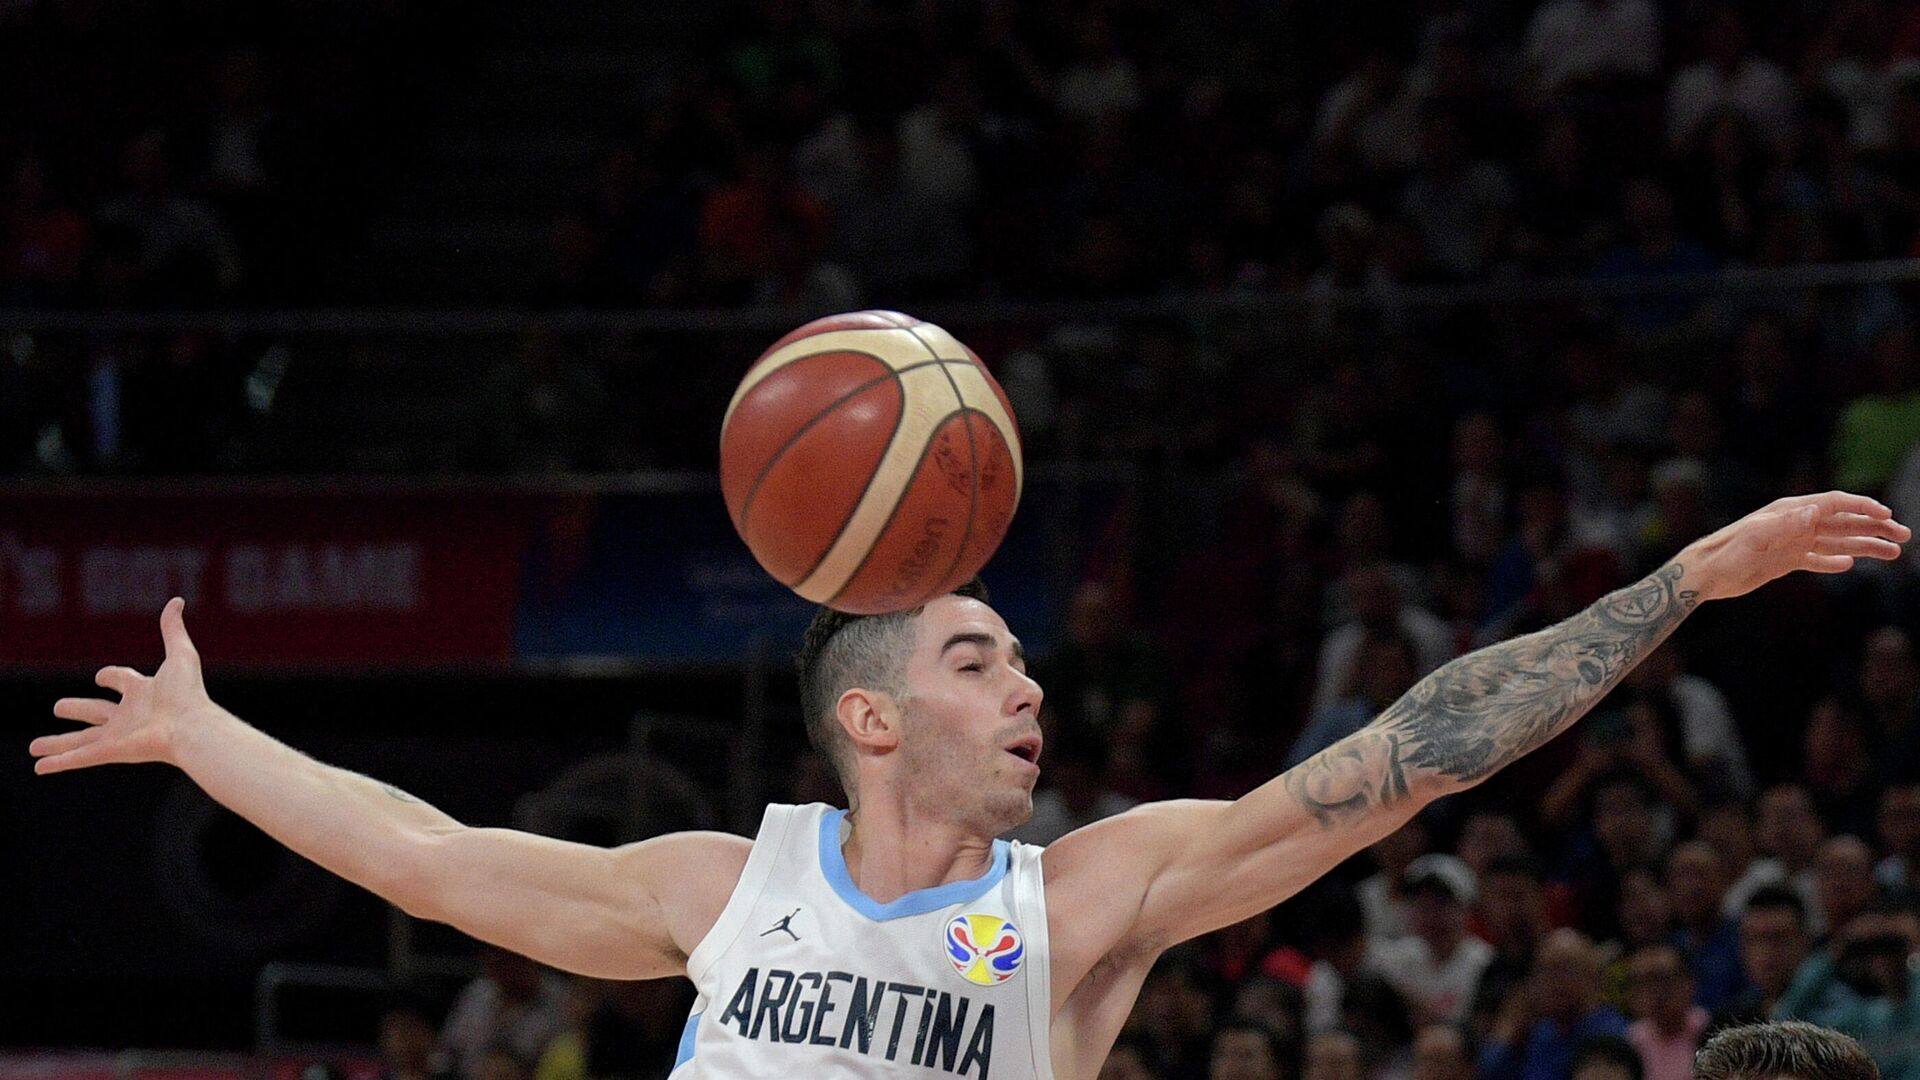 Argentina's Luca Vildoza goes for the ball during the Basketball World Cup semi-final game between Argentina and France in Beijing on September 13, 2019. (Photo by NOEL CELIS / AFP) - РИА Новости, 1920, 07.05.2021